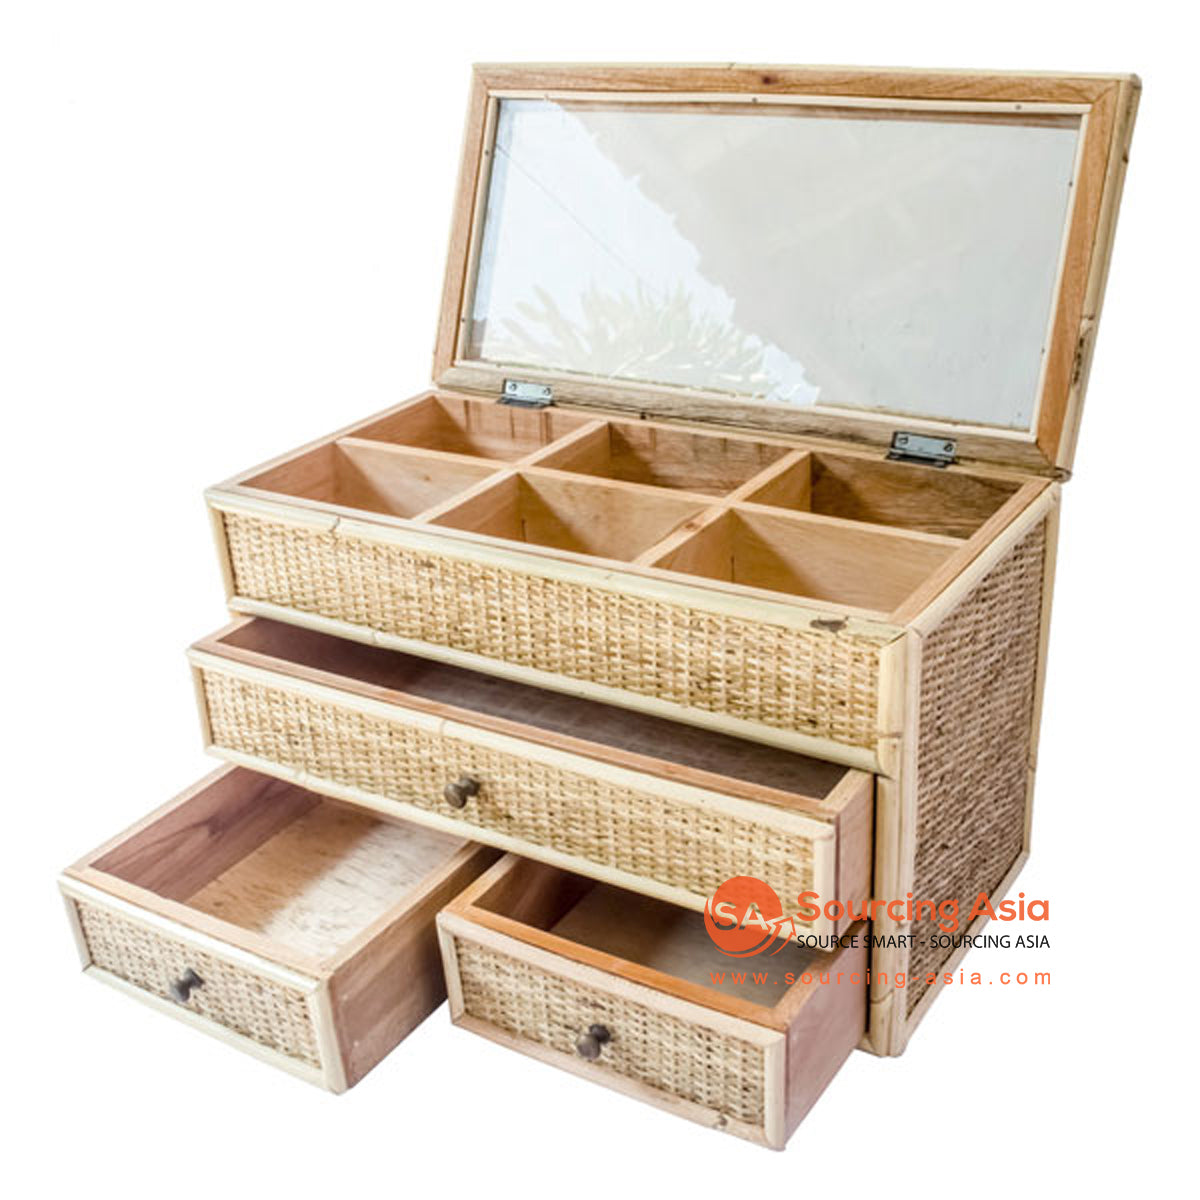 SHL186-1 RATTAN JEWELRY BOX WITH 3 DRAWERS